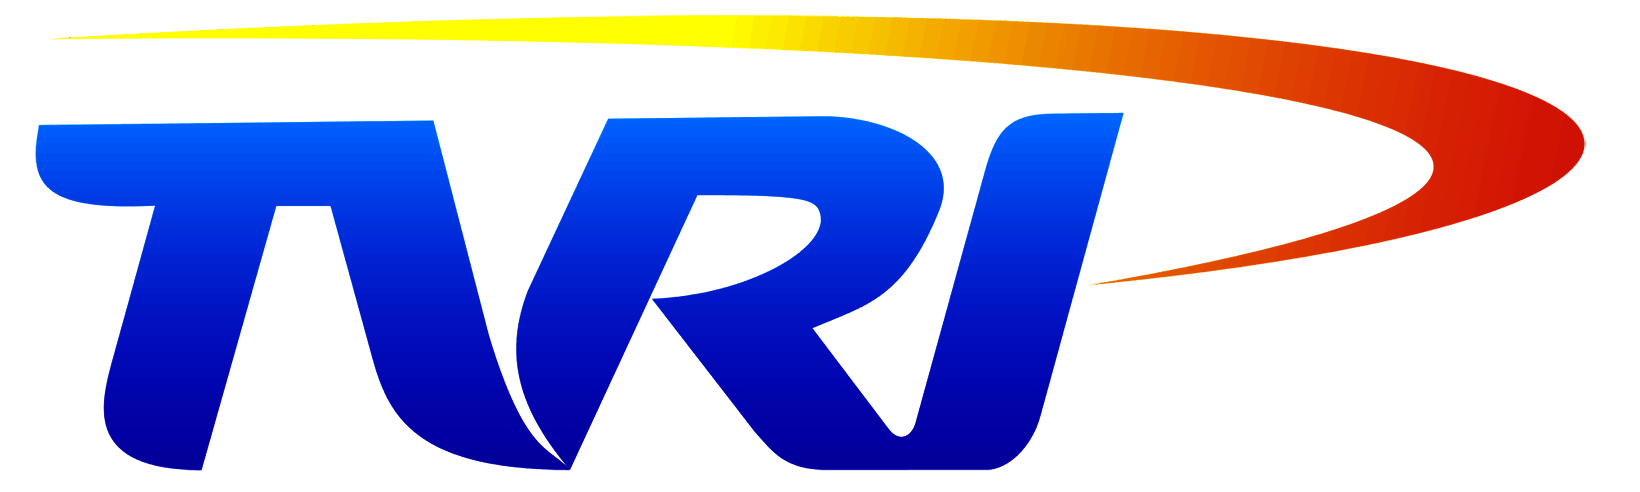 Watch tvri indonesia live streaming tvri indonesia live stopboris Gallery